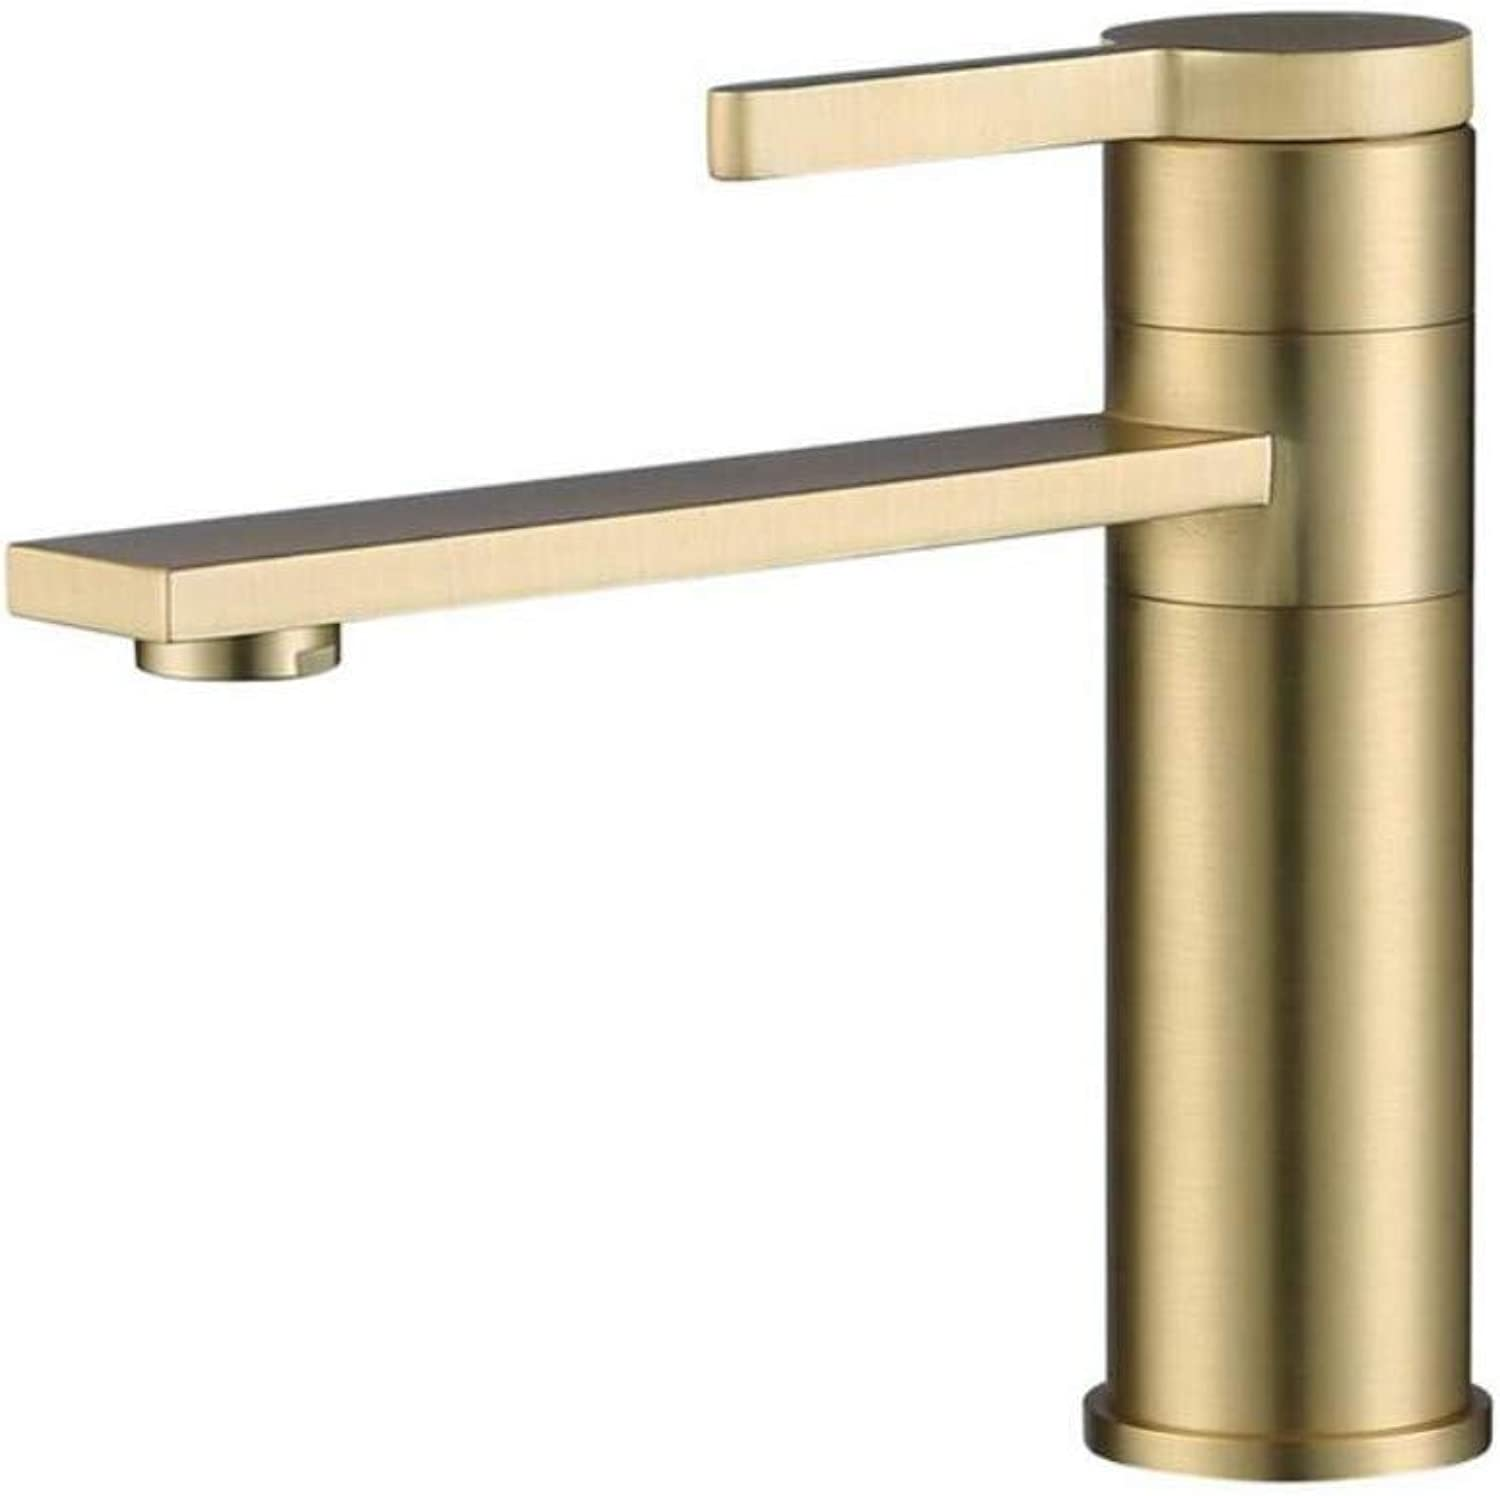 Copper Faucet Basin Nordic Brass Basin Faucet Copper Hot and Cold redating Faucet Matte Brushed gold Washbasin Faucet